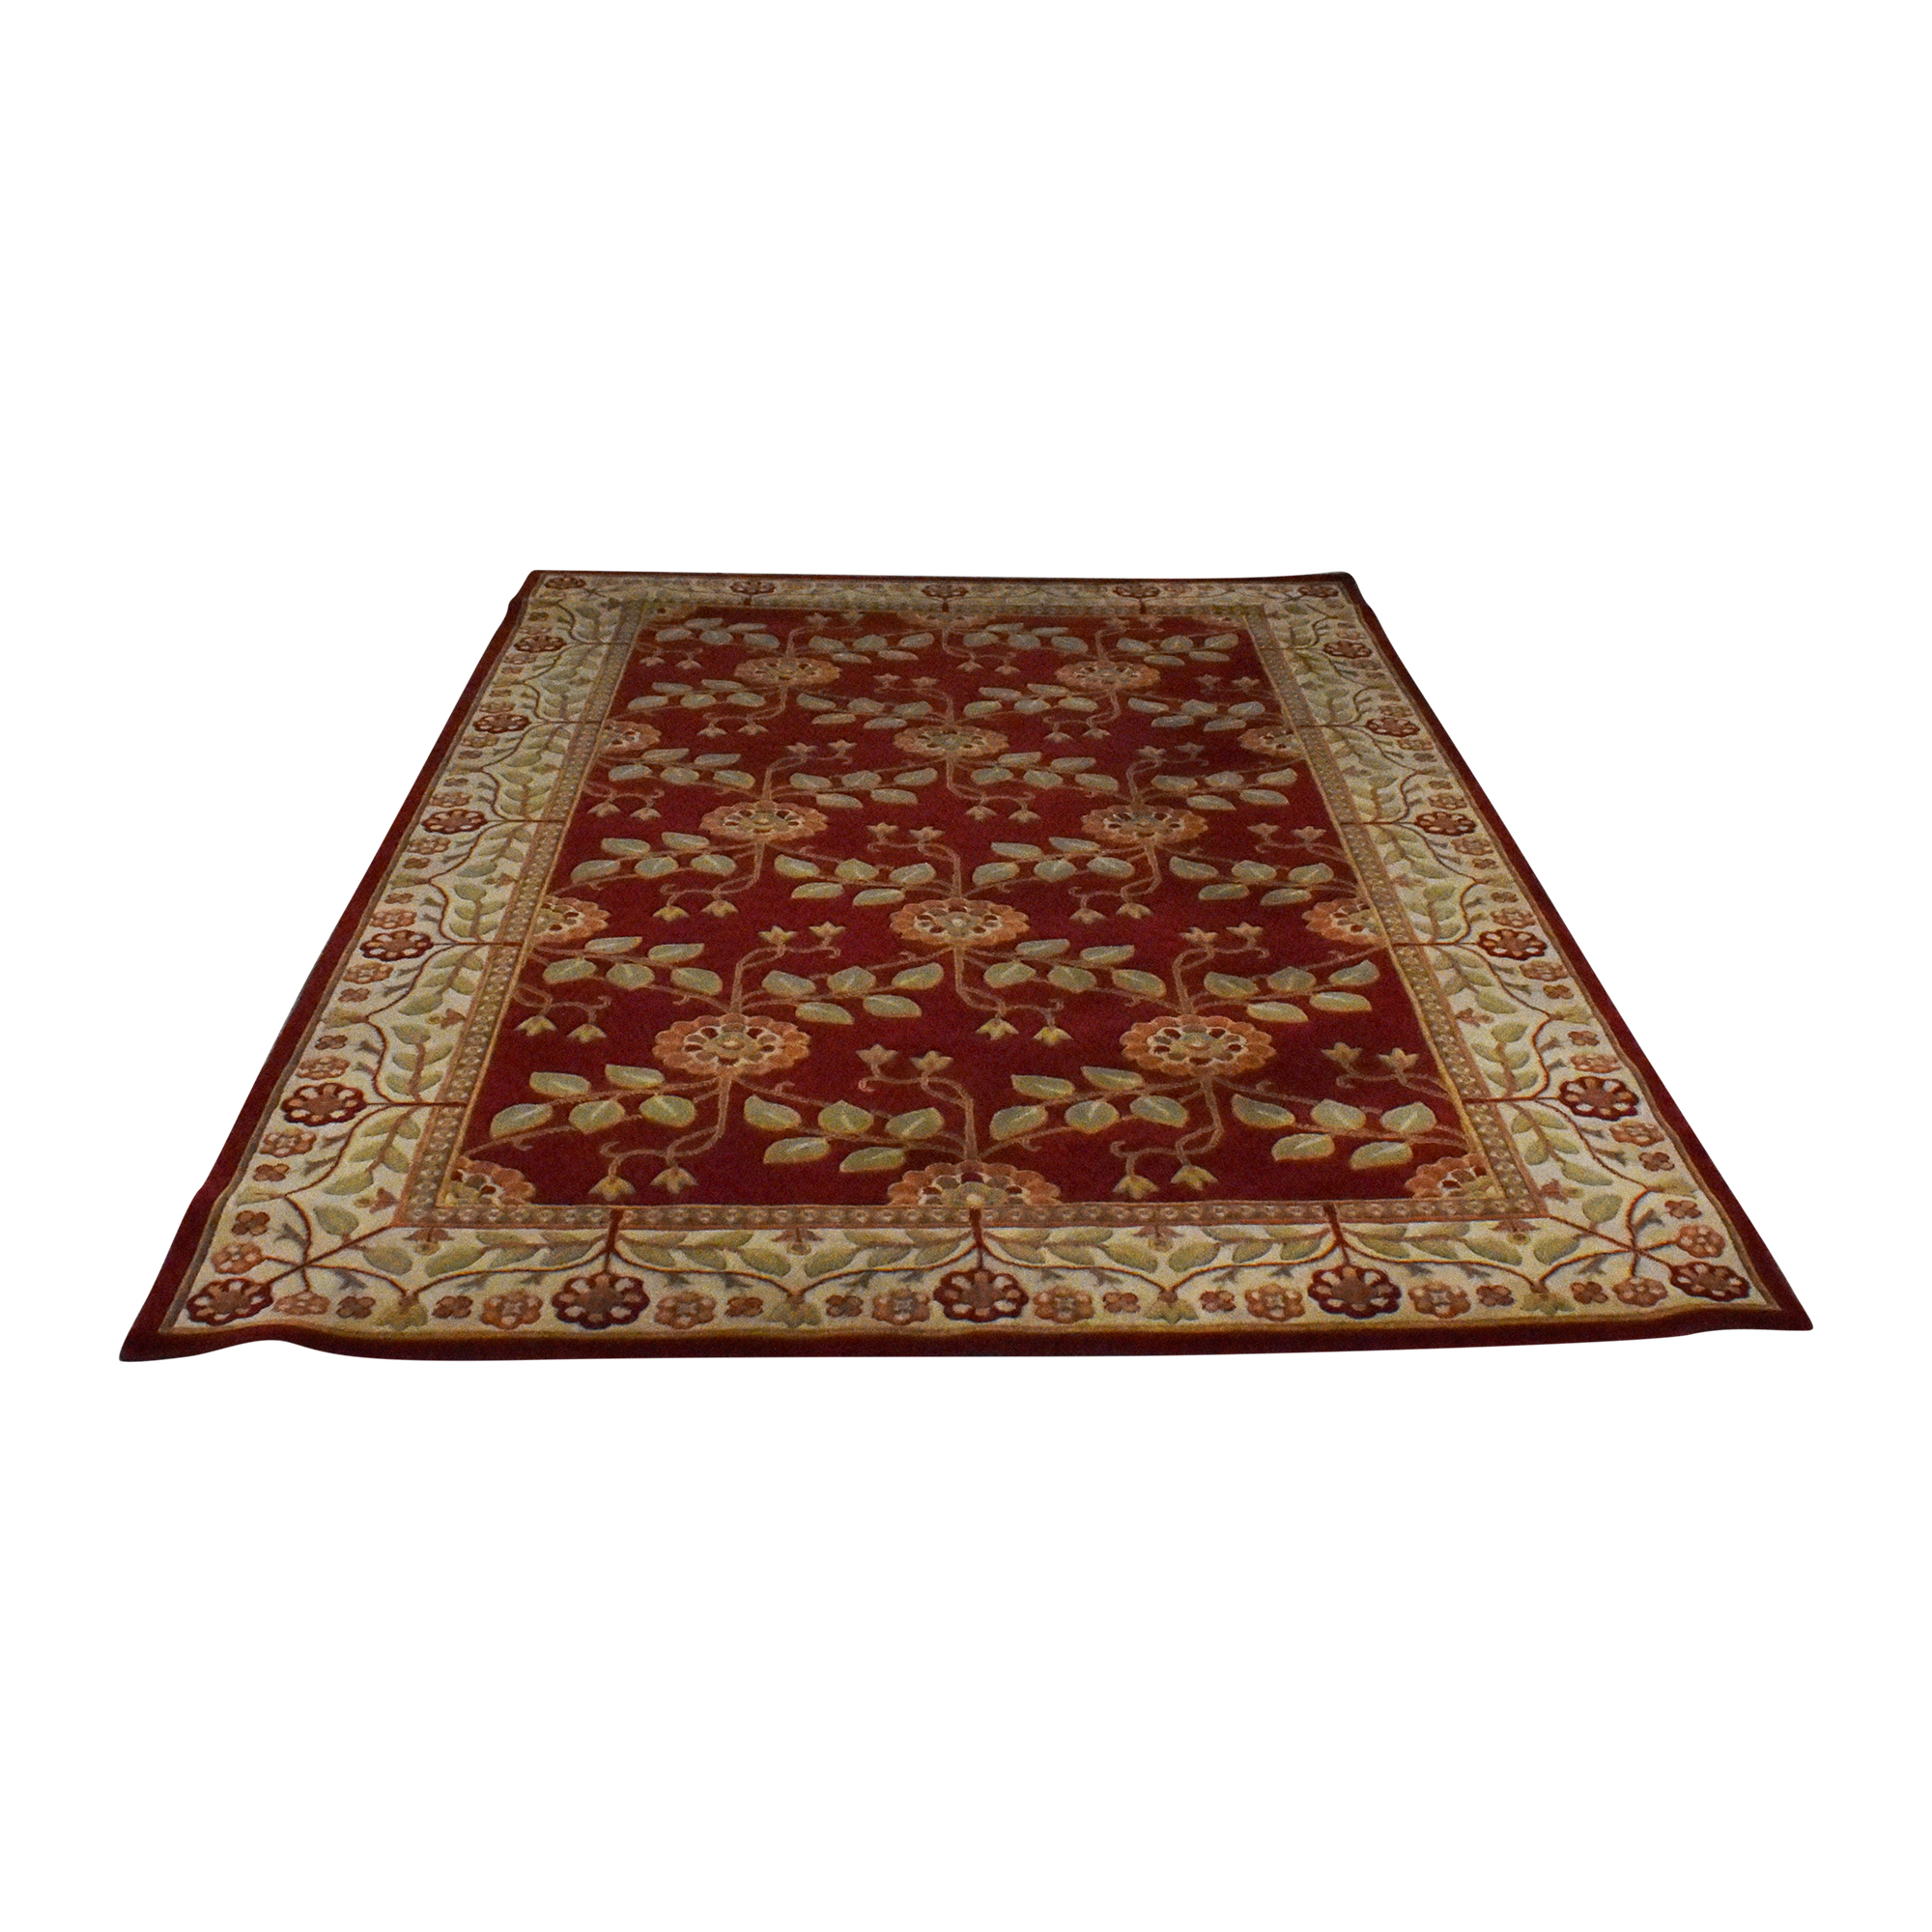 Patterned Area Rug / Decor